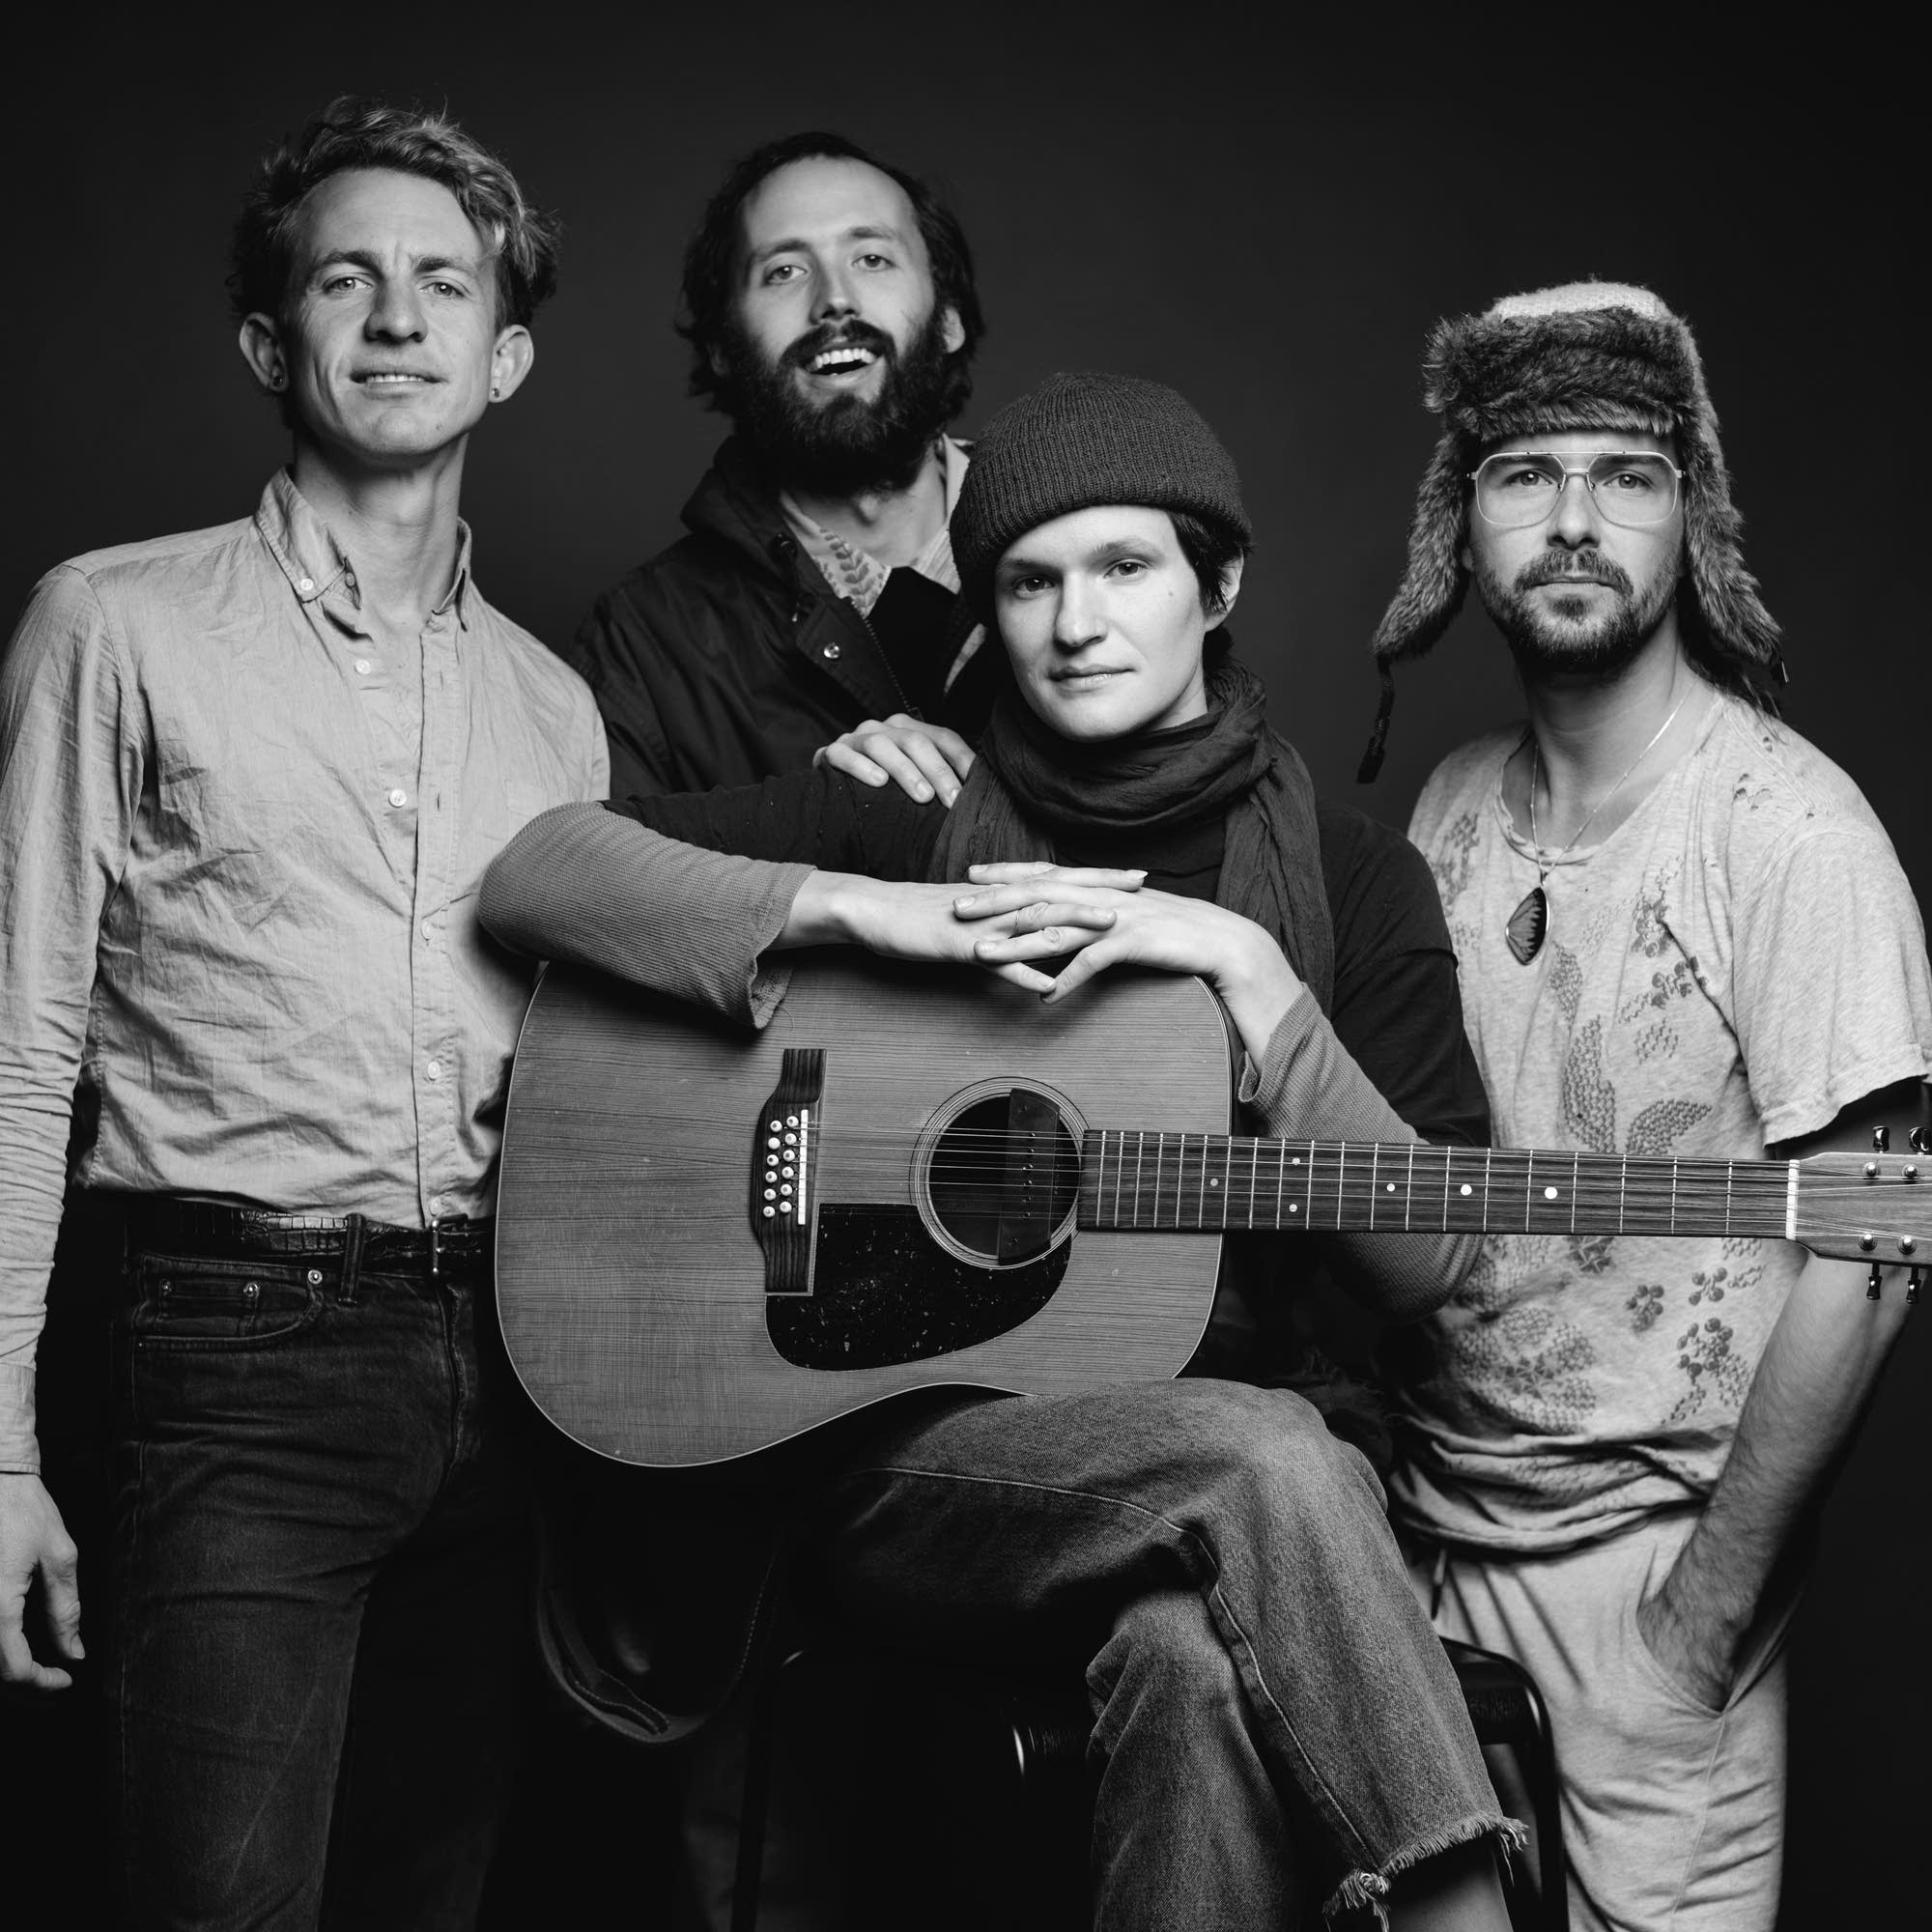 Big Thief explore new sounds live in The Current studio | The Current